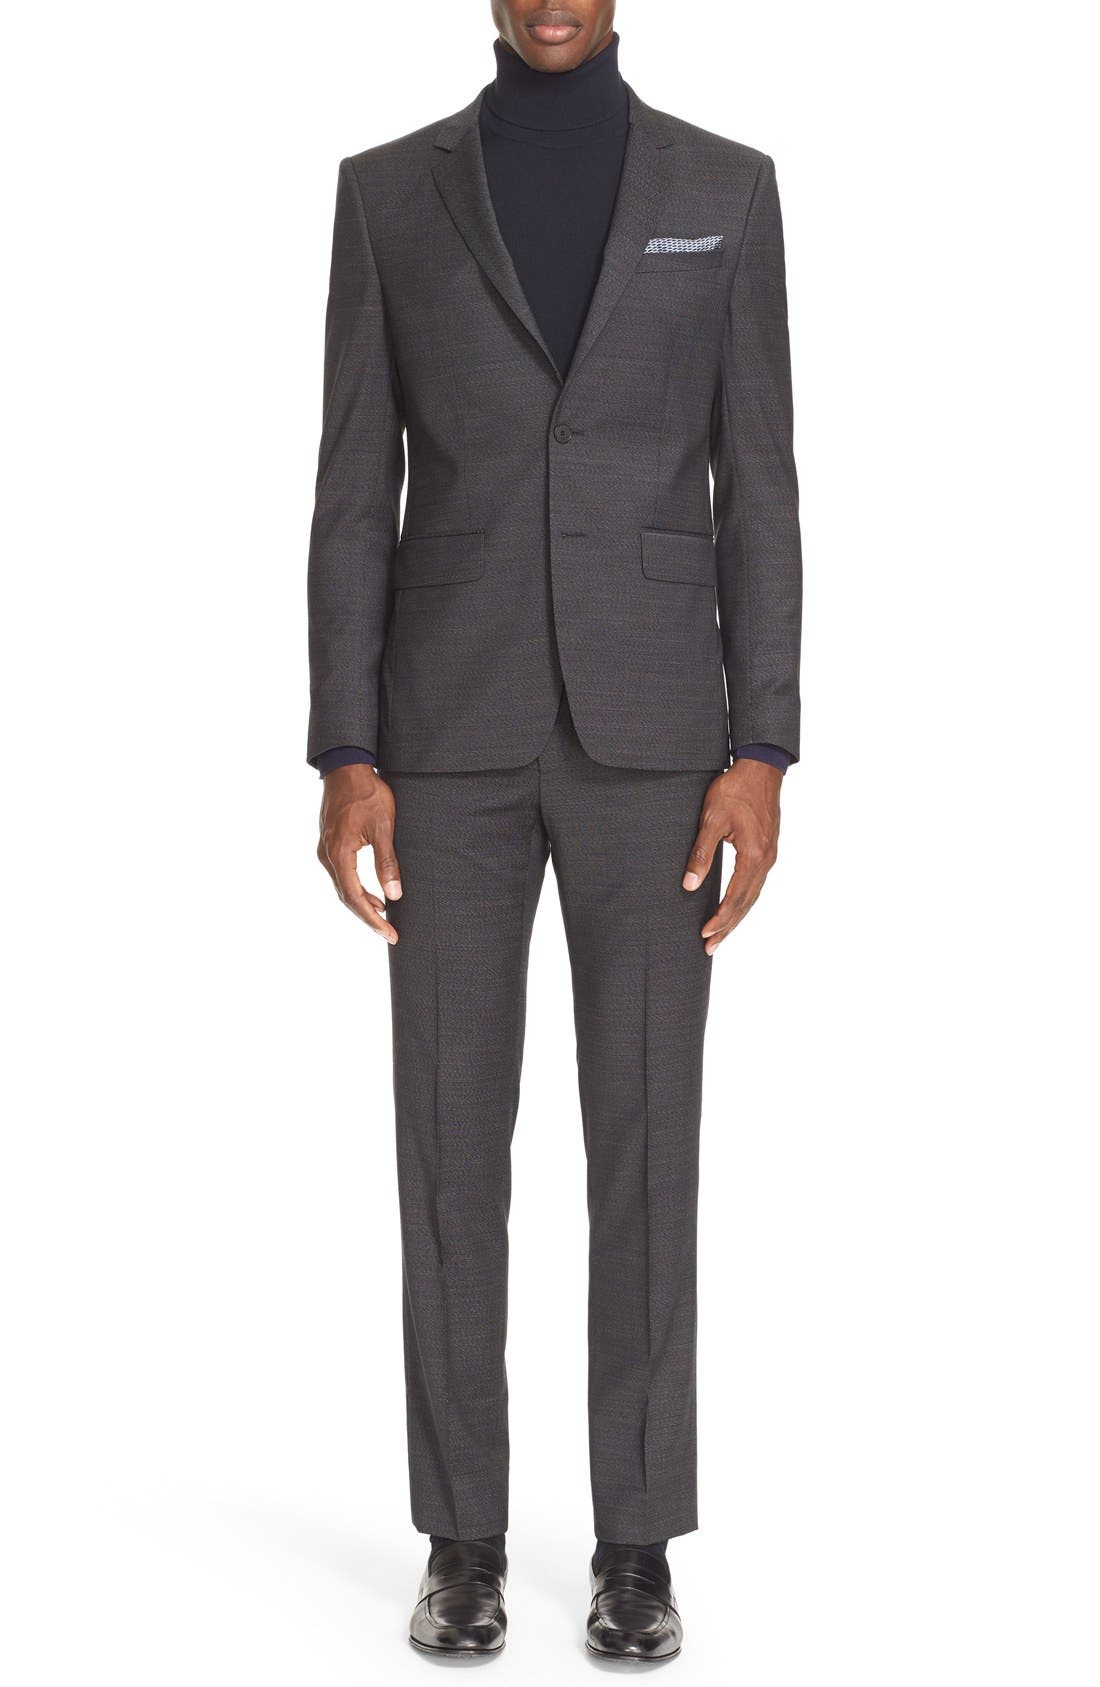 Alternate Image 1 Selected - Givenchy Extra Trim Fit Textured Wool Suit